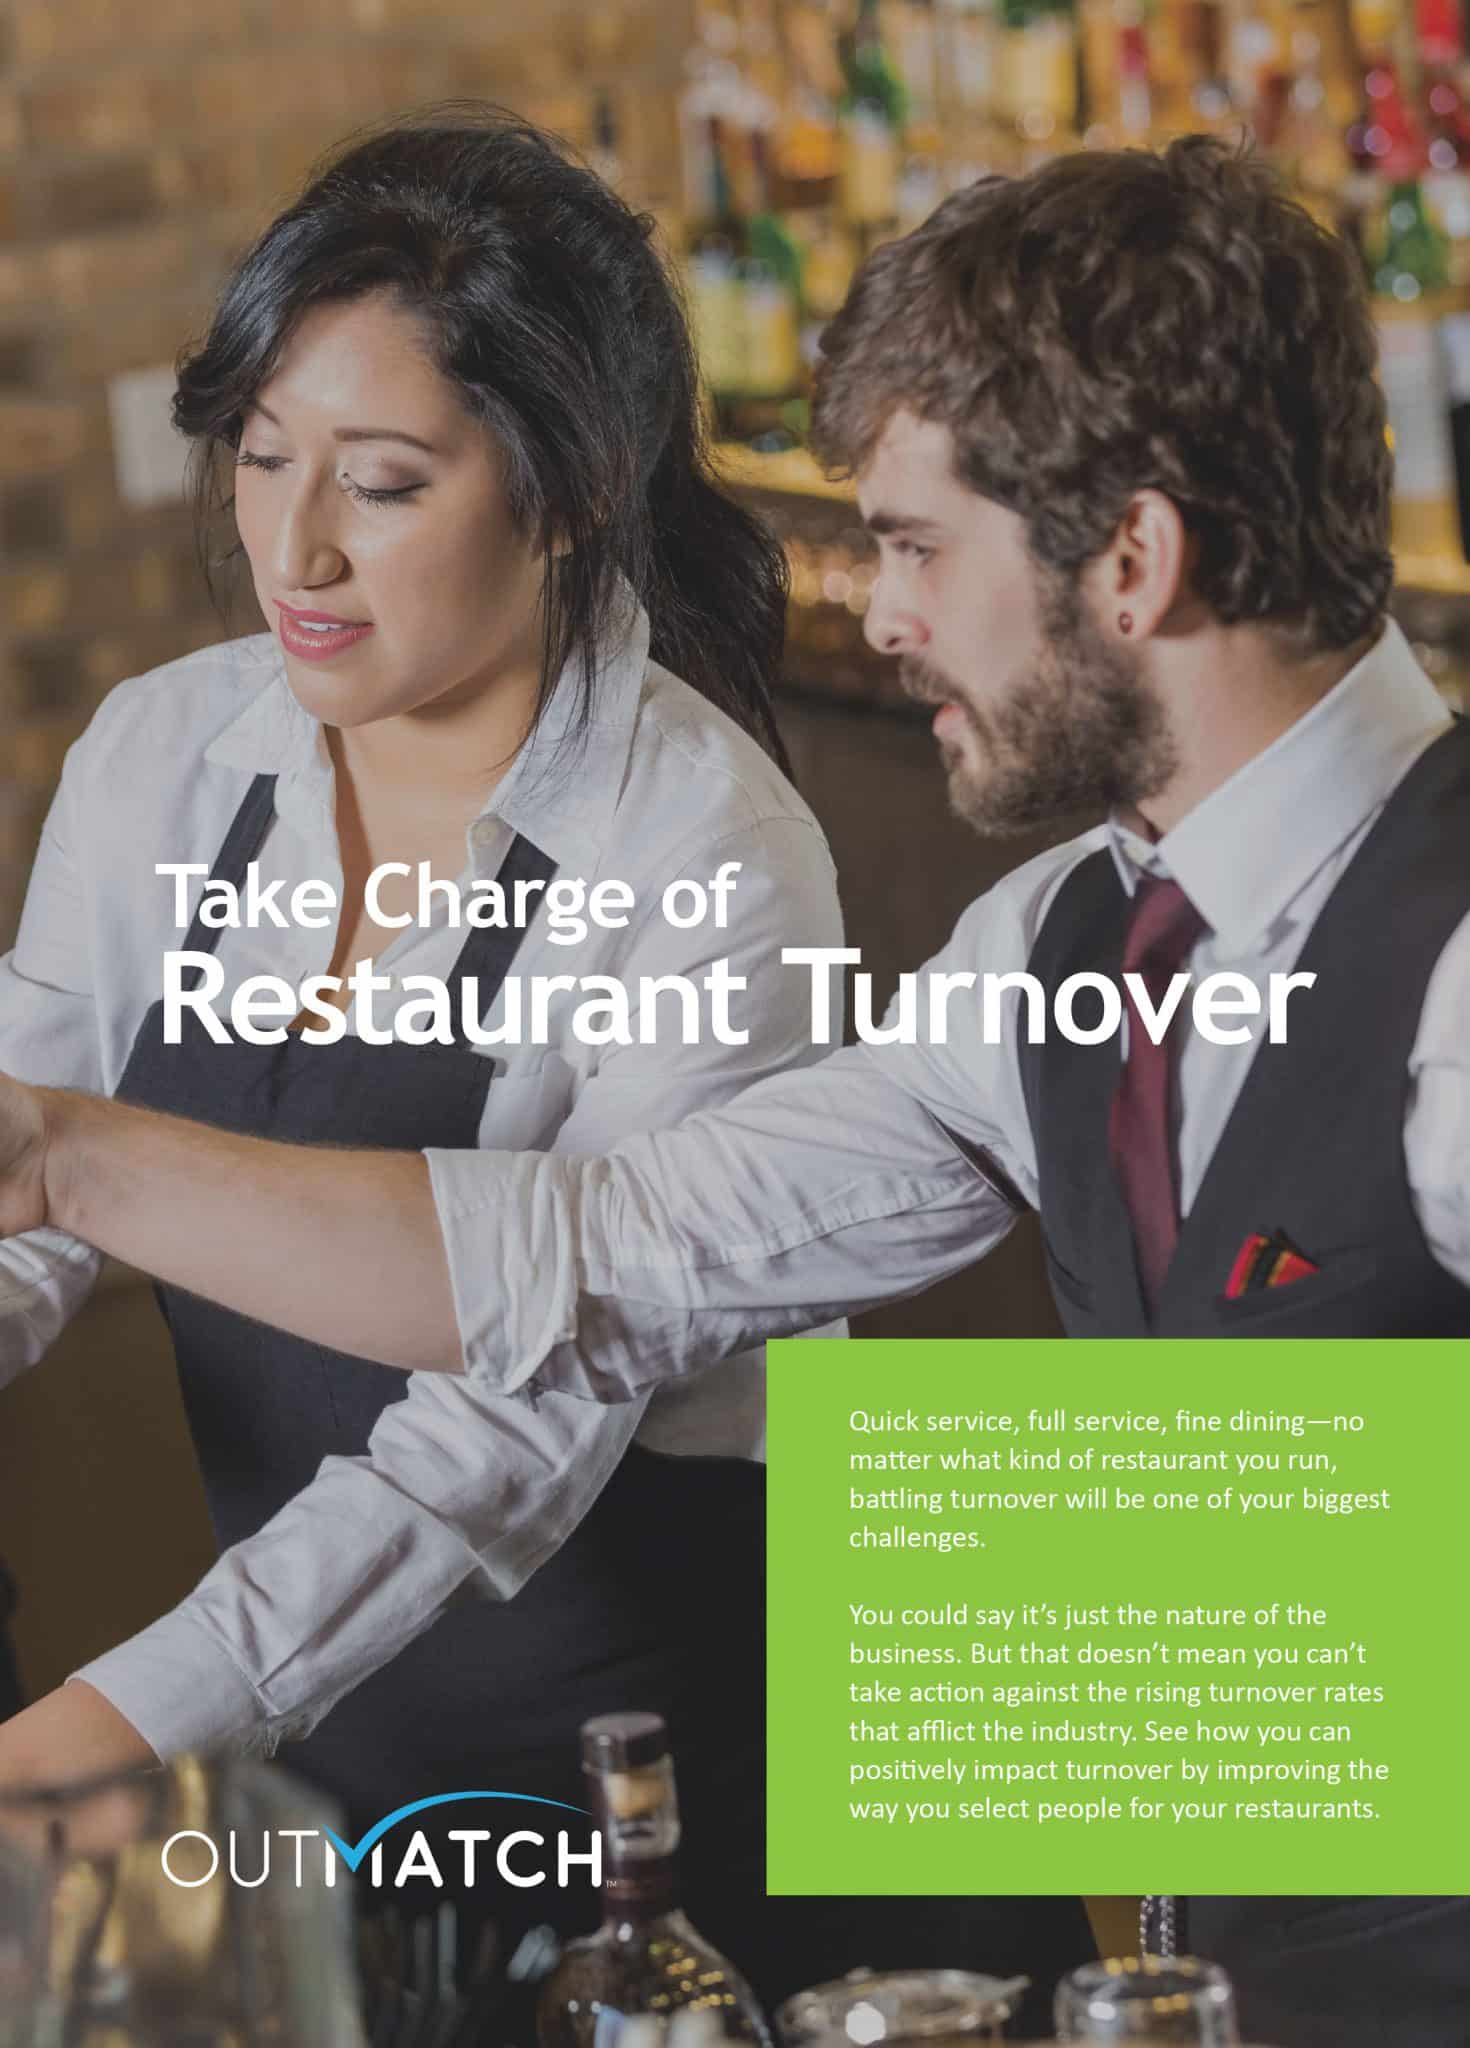 take charge of restaurant turnover - blog teaser